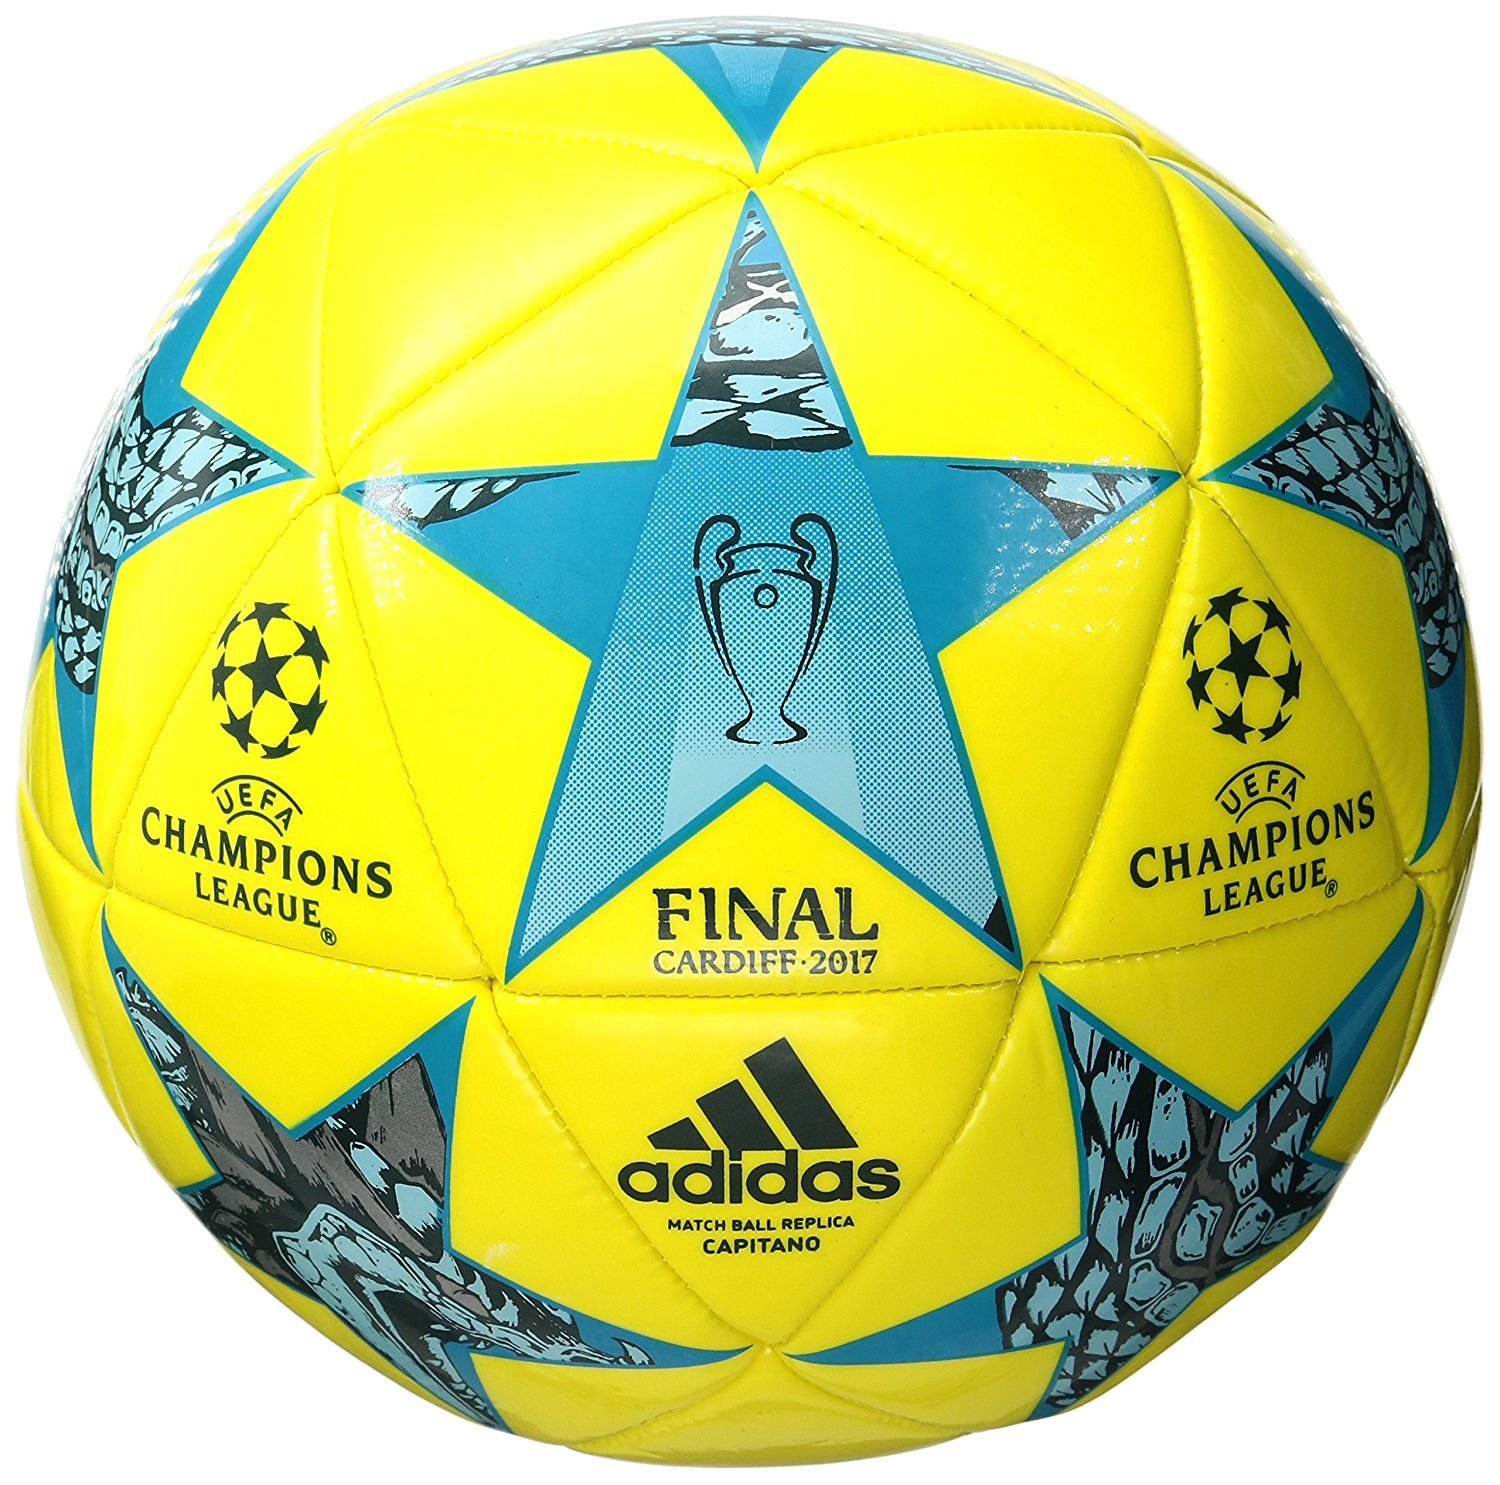 cuero Considerar Engreído  Amazon.com : adidas Performance Champions League Finale Capitano Soccer  Ball : Sports & Outdoors Color:Bright Yellow/Cle… | Soccer, Soccer ball,  Sports team banners